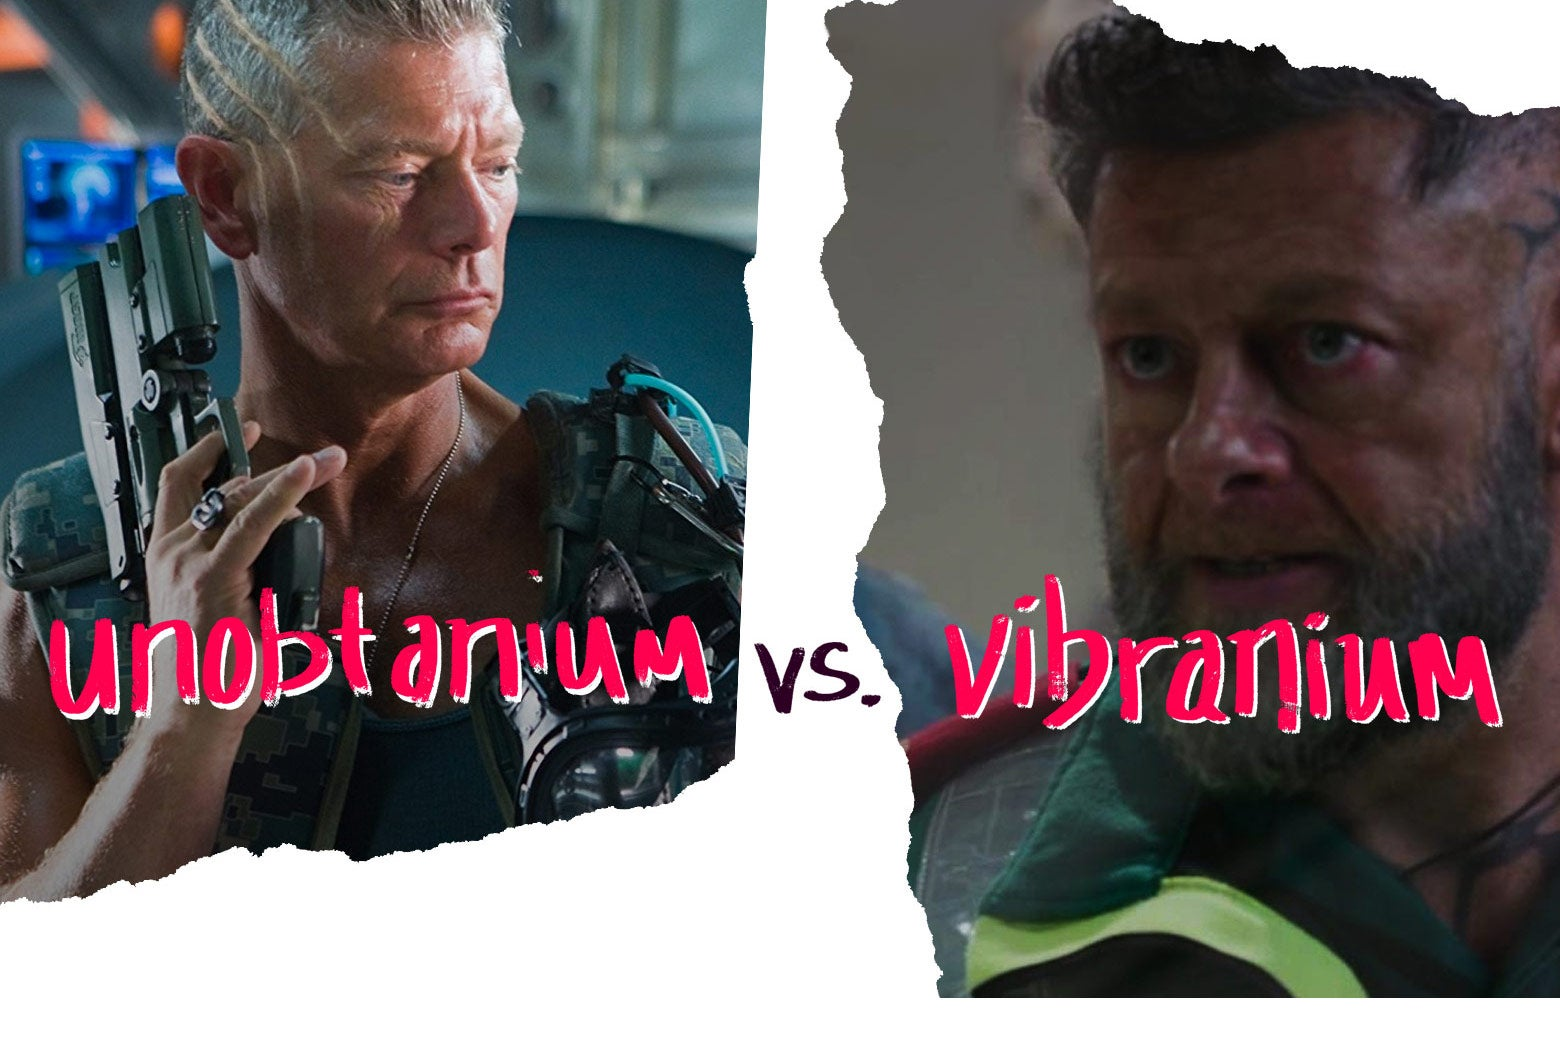 Col. Miles Quaritch from Avatar, played by Stephen Lang, and Andy Serkis' Klaue from Black Panther.